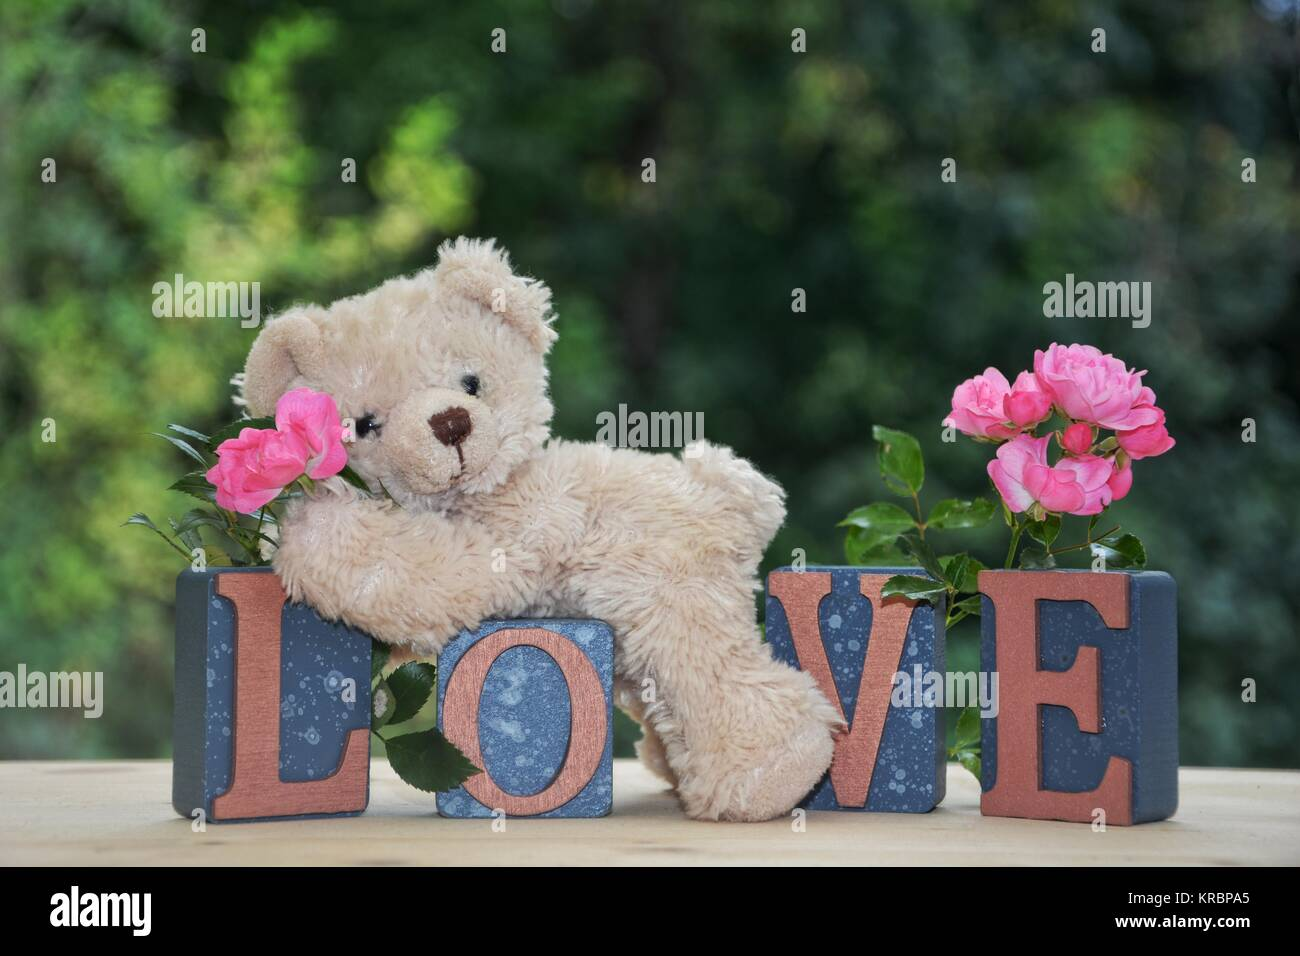 White teddy bear lies on love stones with pink roses stock photo white teddy bear lies on love stones with pink roses altavistaventures Images